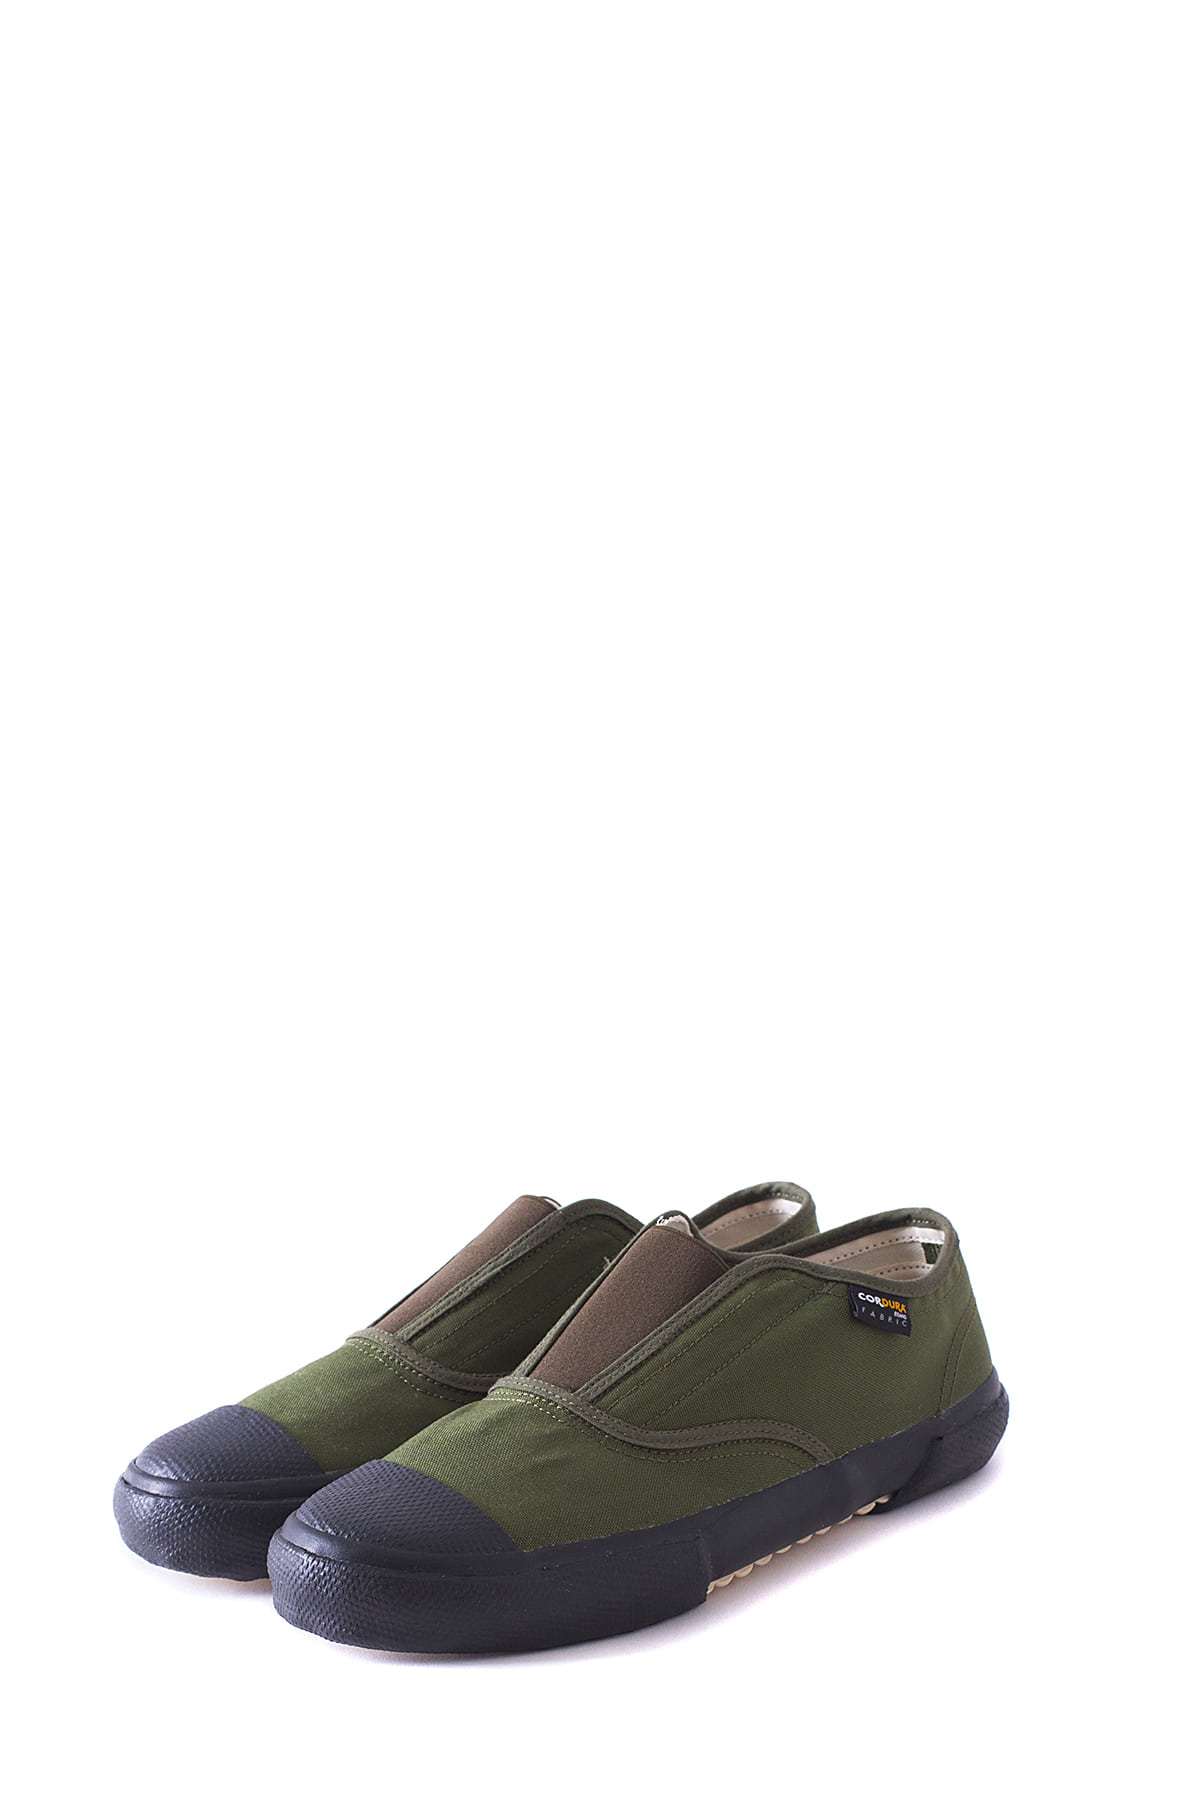 REPRODUCTION OF FOUND : Italian Military Trainer (Olive / Black Sol)